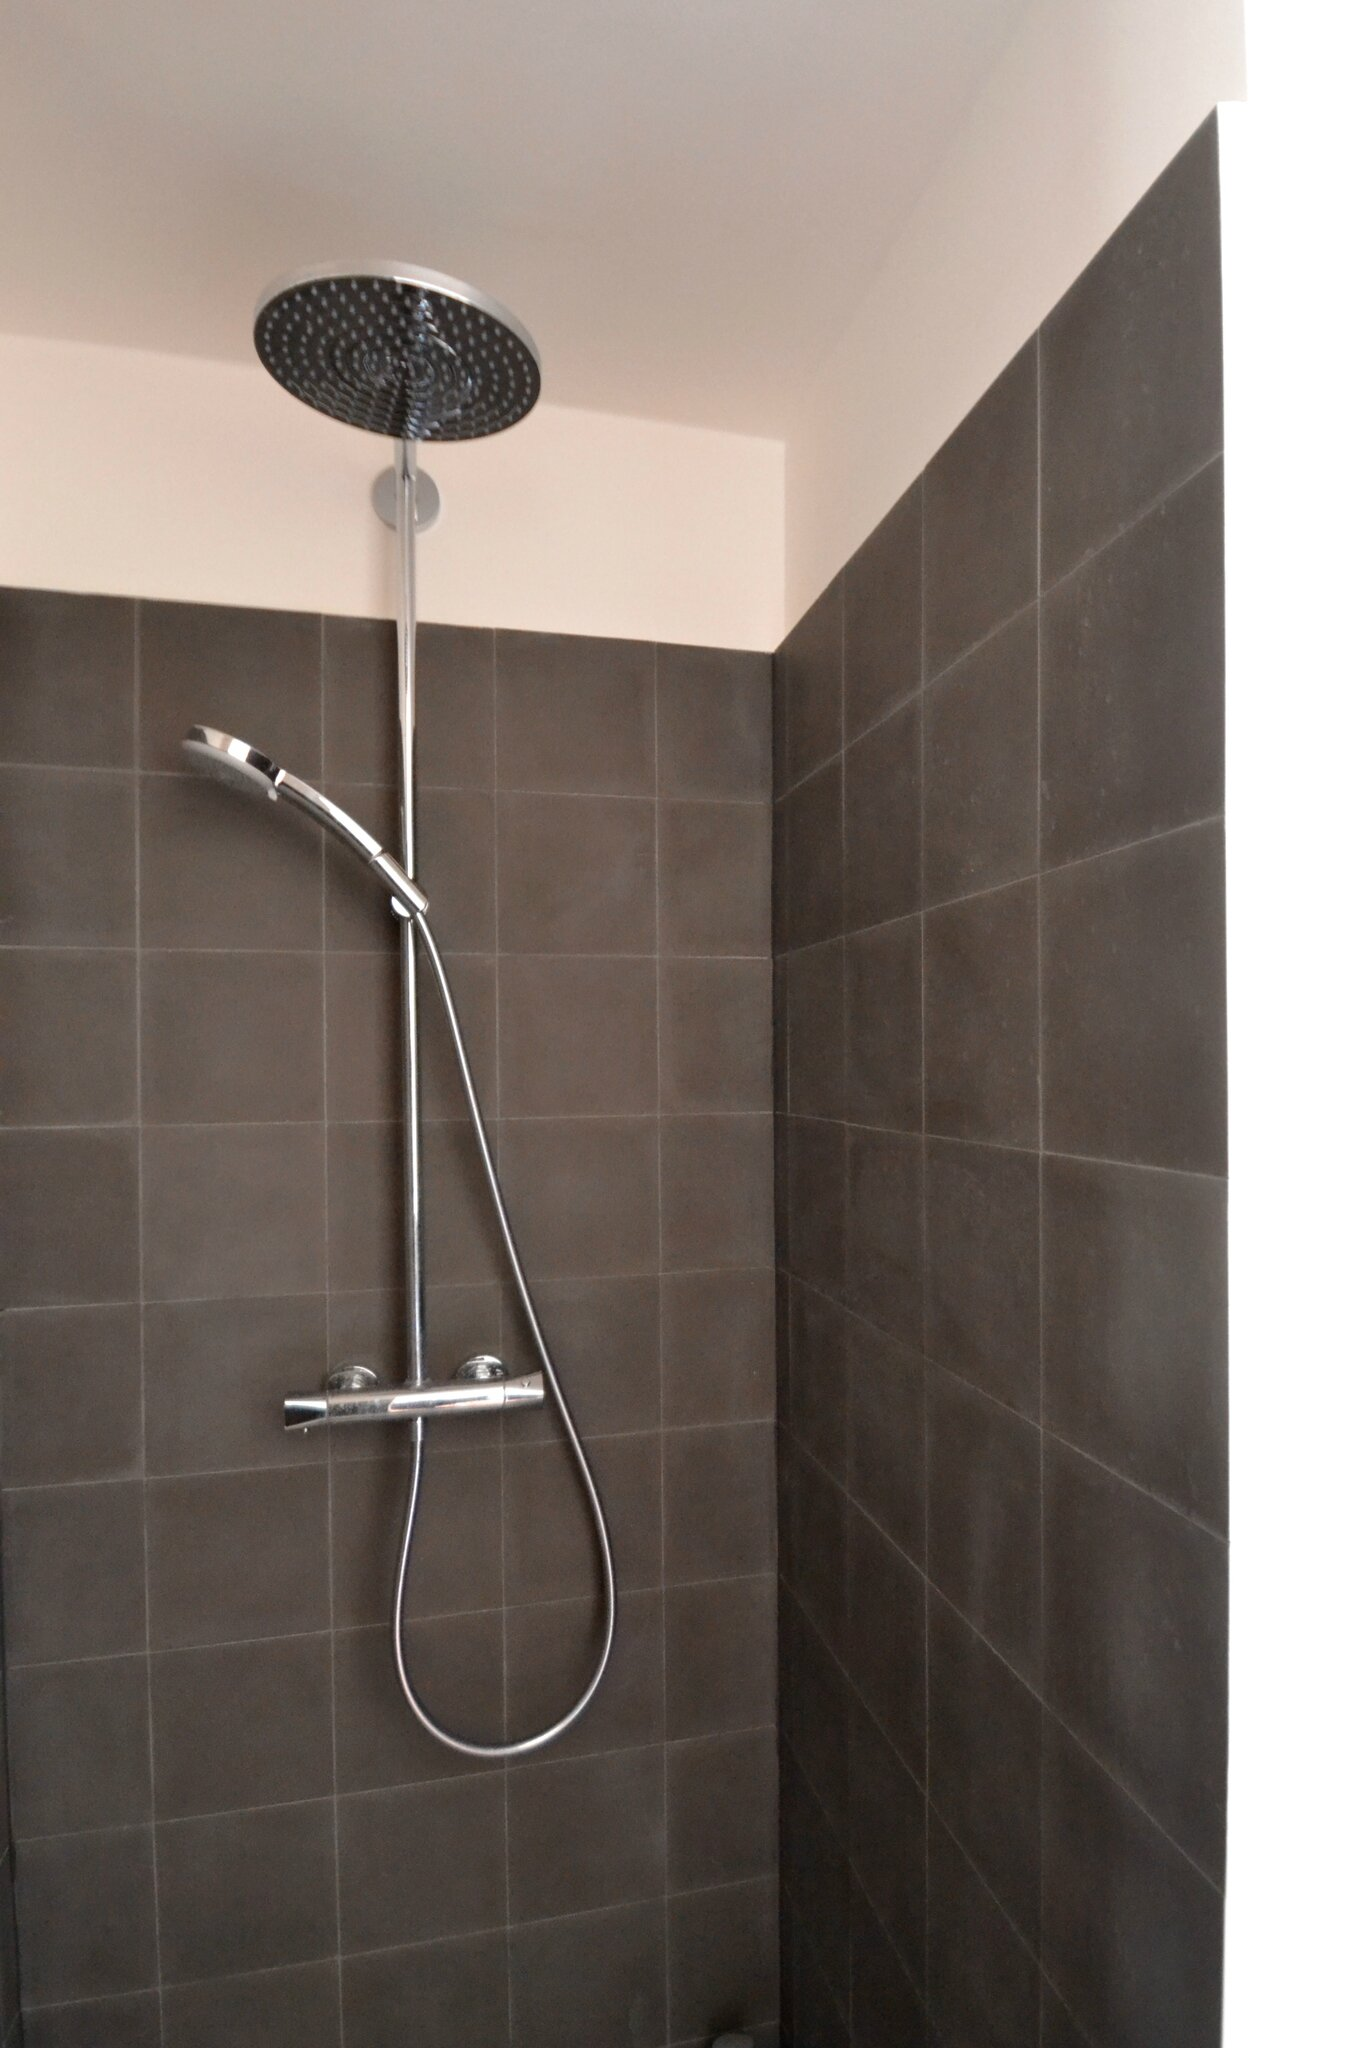 carreaux ciment douche cool related post with carreaux ciment douche elegant vive les carreaux. Black Bedroom Furniture Sets. Home Design Ideas